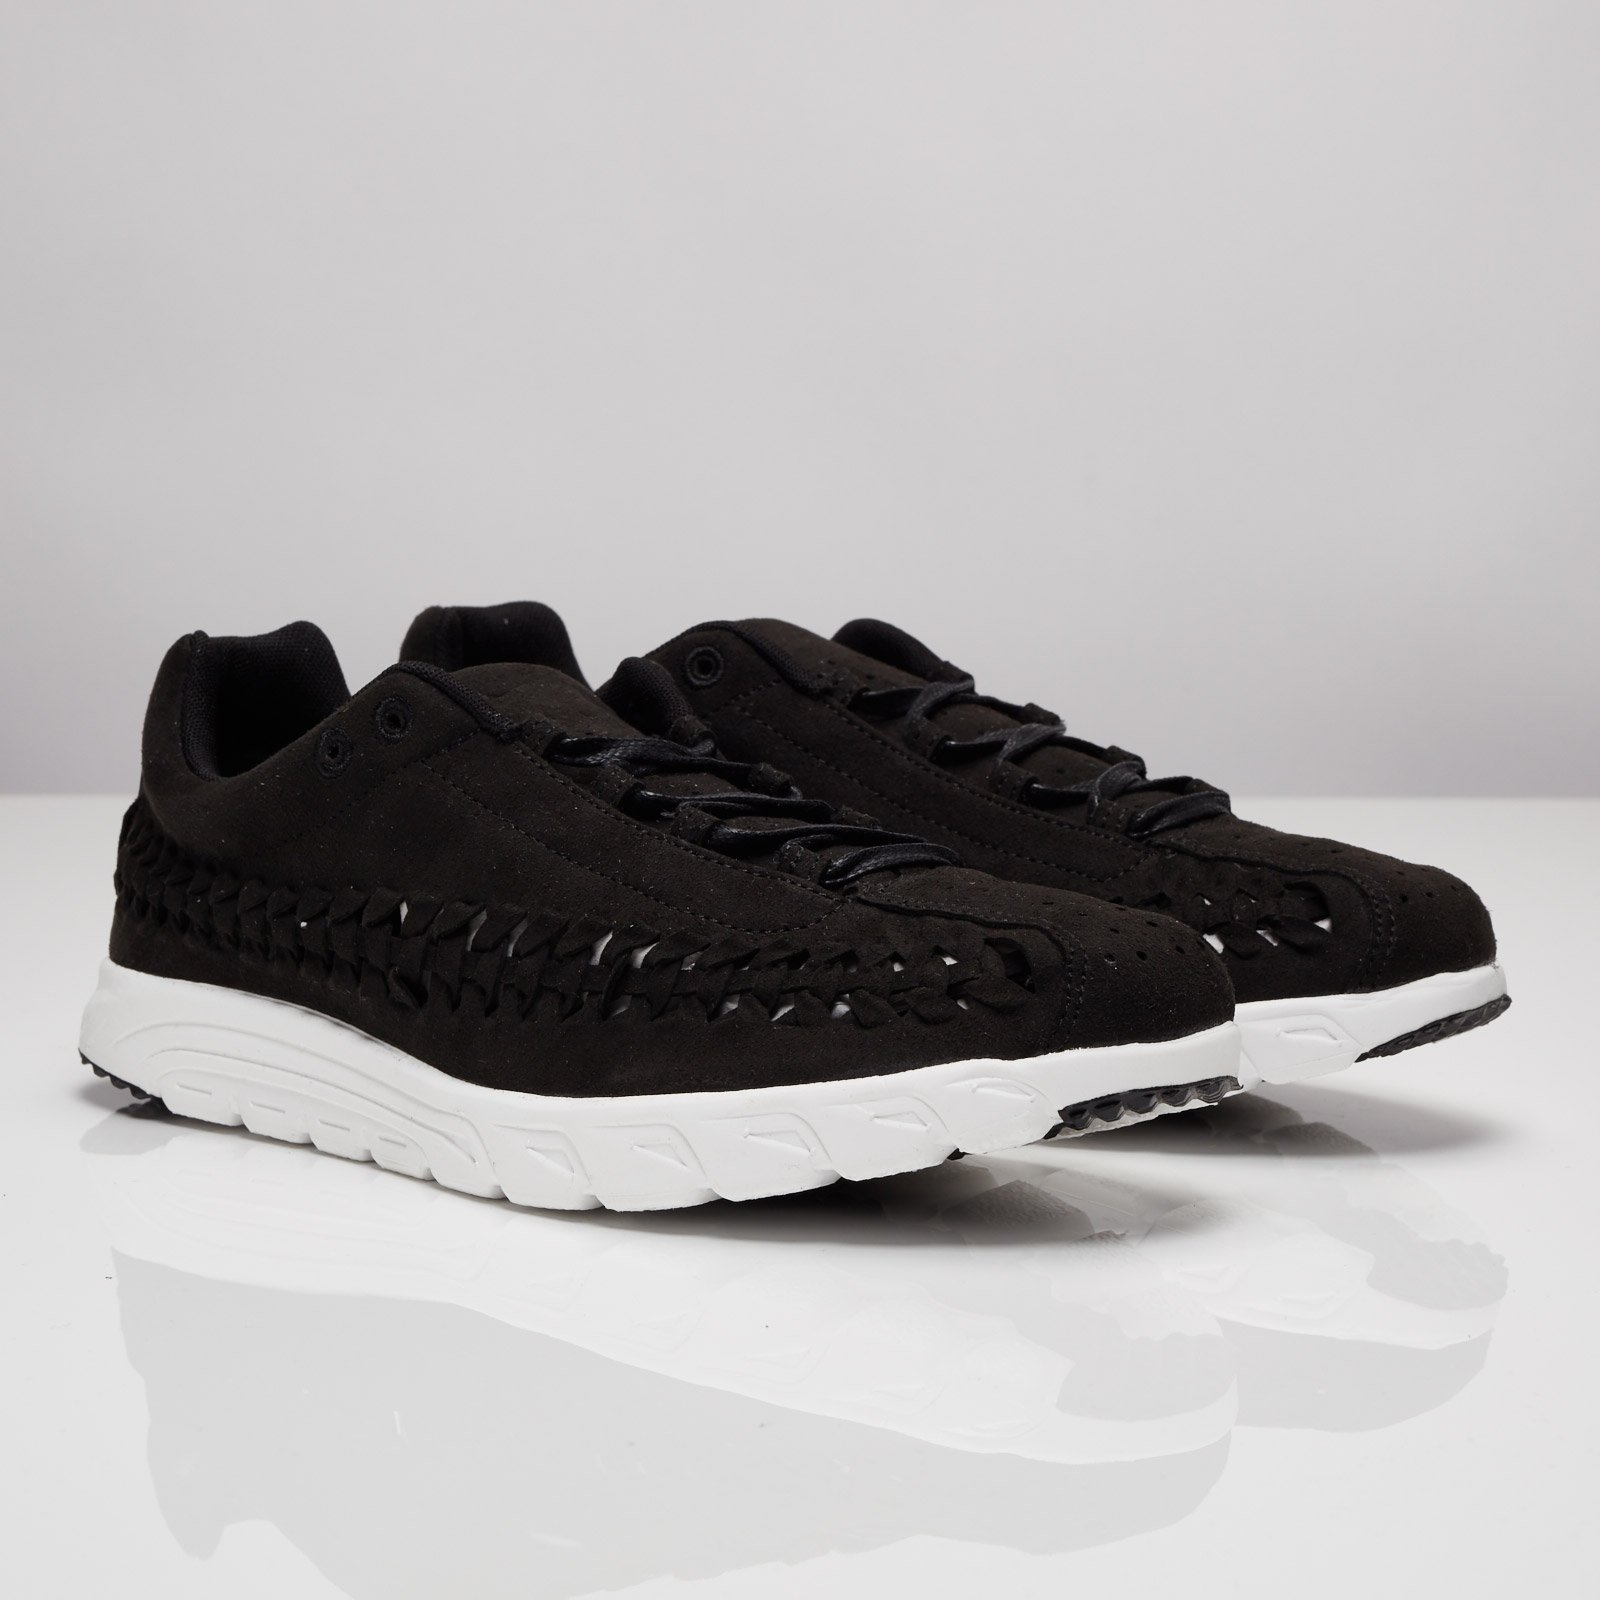 separation shoes bf0f2 ee607 Nike Mayfly Woven - 833132-001 - Sneakersnstuff | sneakers ...